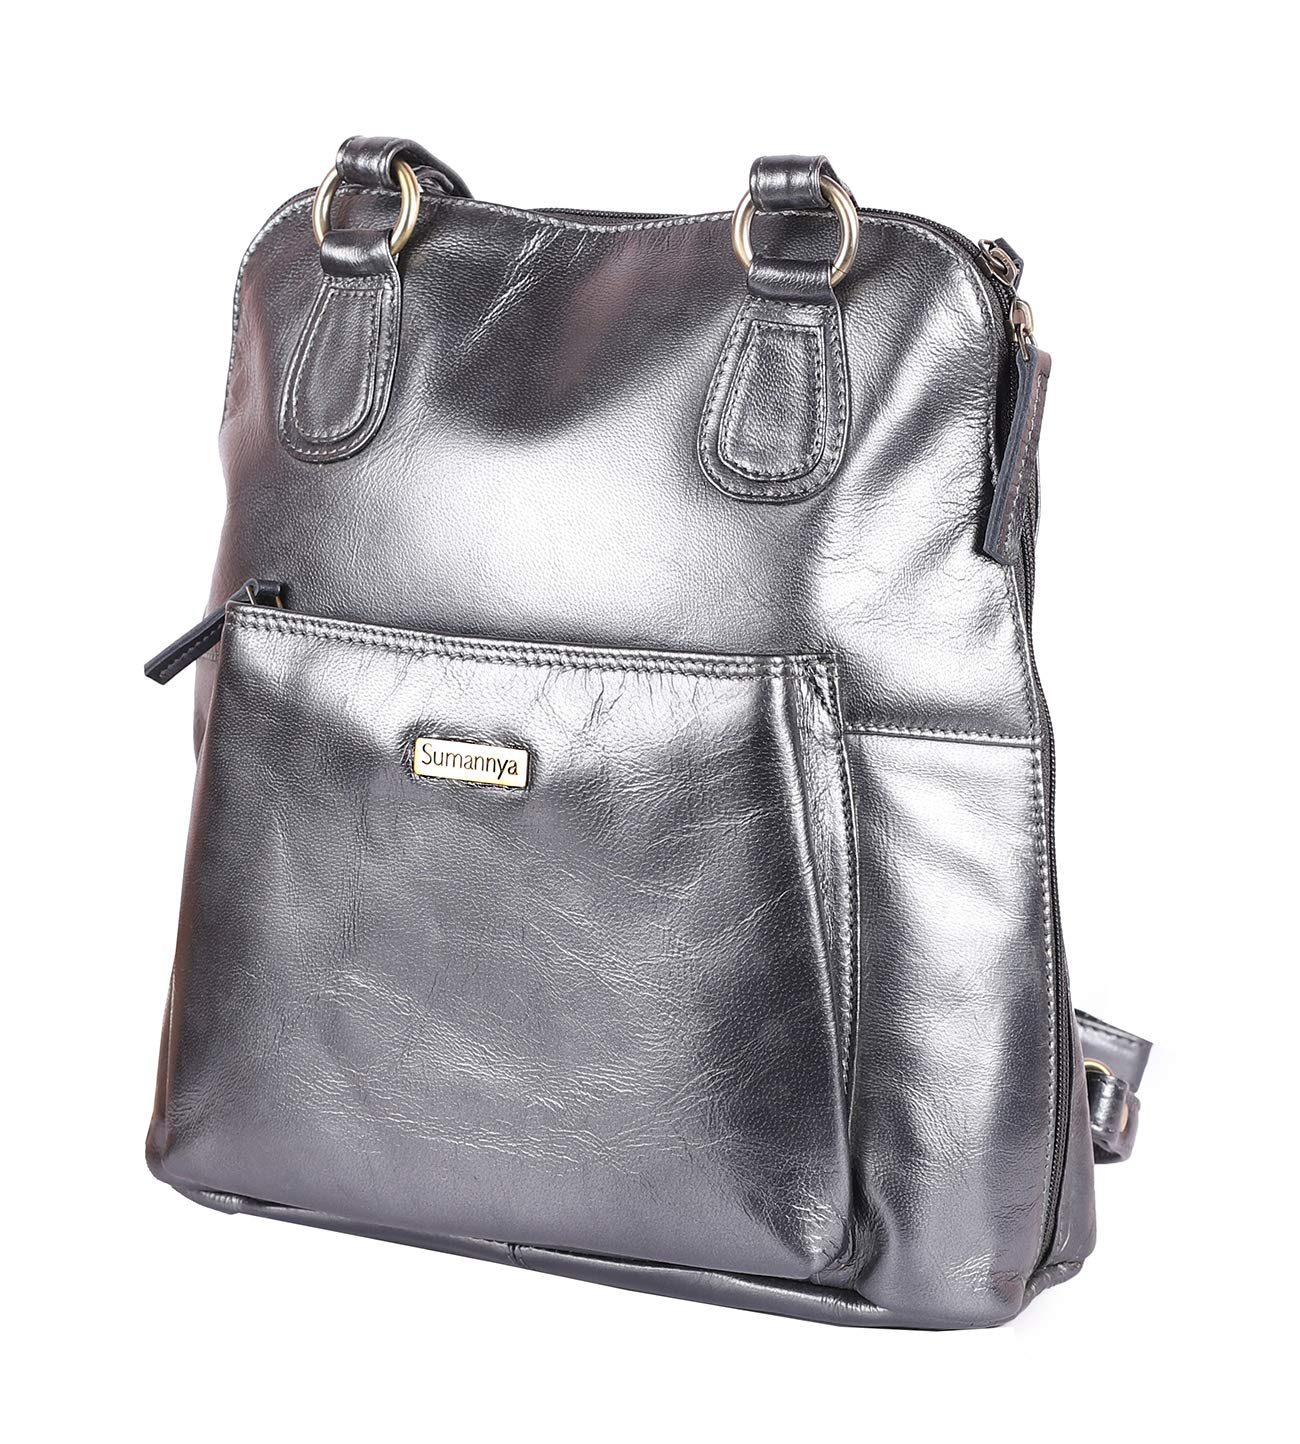 598a081e0d17 Buy Sumannya Genuine Leather Grey Ladies Handbag Backpack Online at Low  Prices in India - Amazon.in